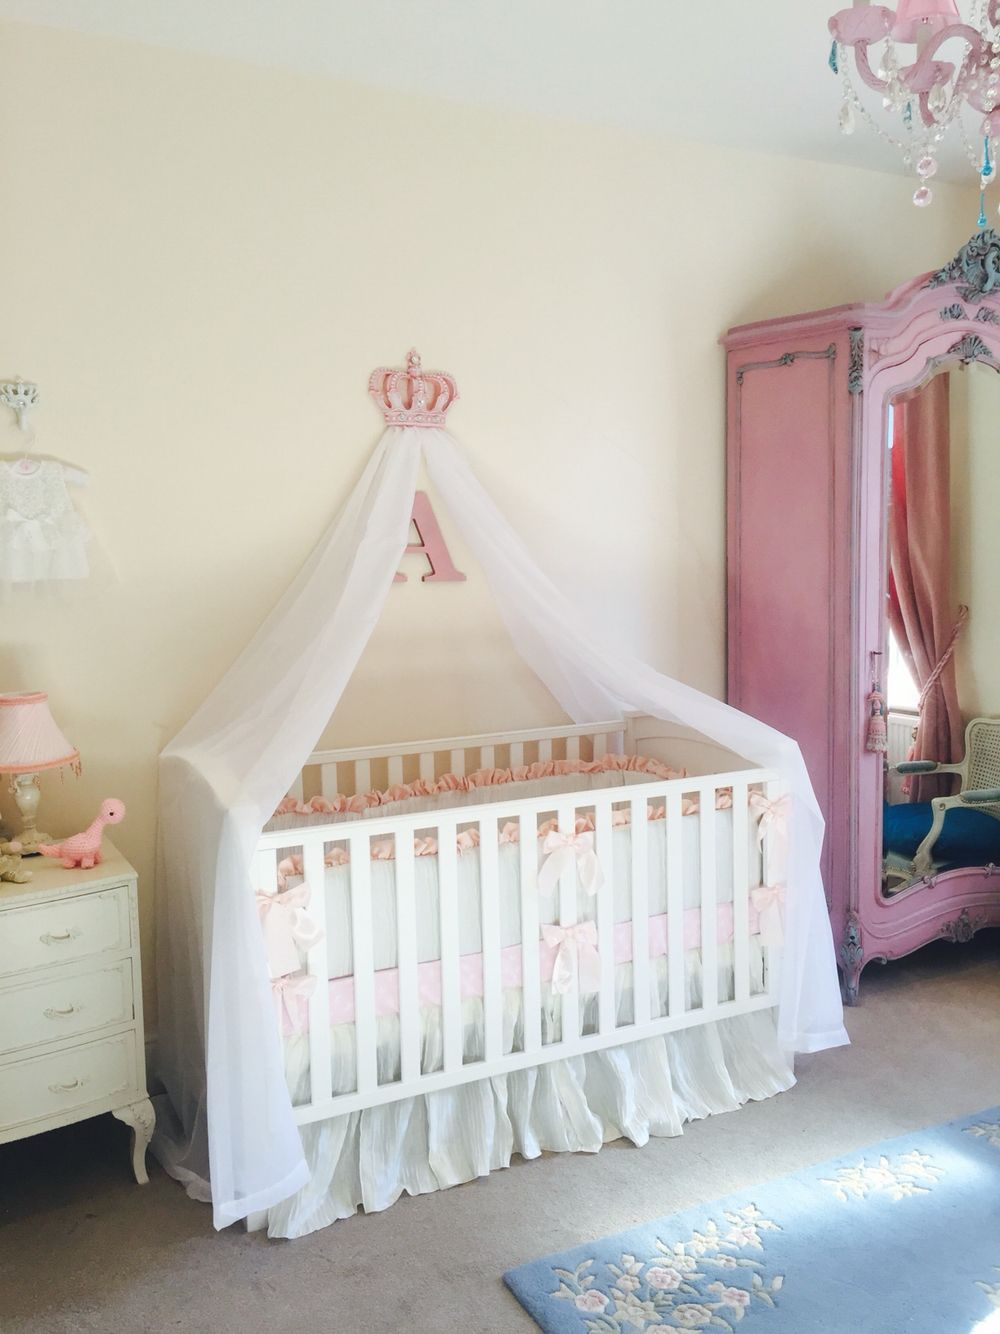 Girls Pink Nursery Cot Canopy White Bed Princess Crown Idea - Canopy idea bed crown